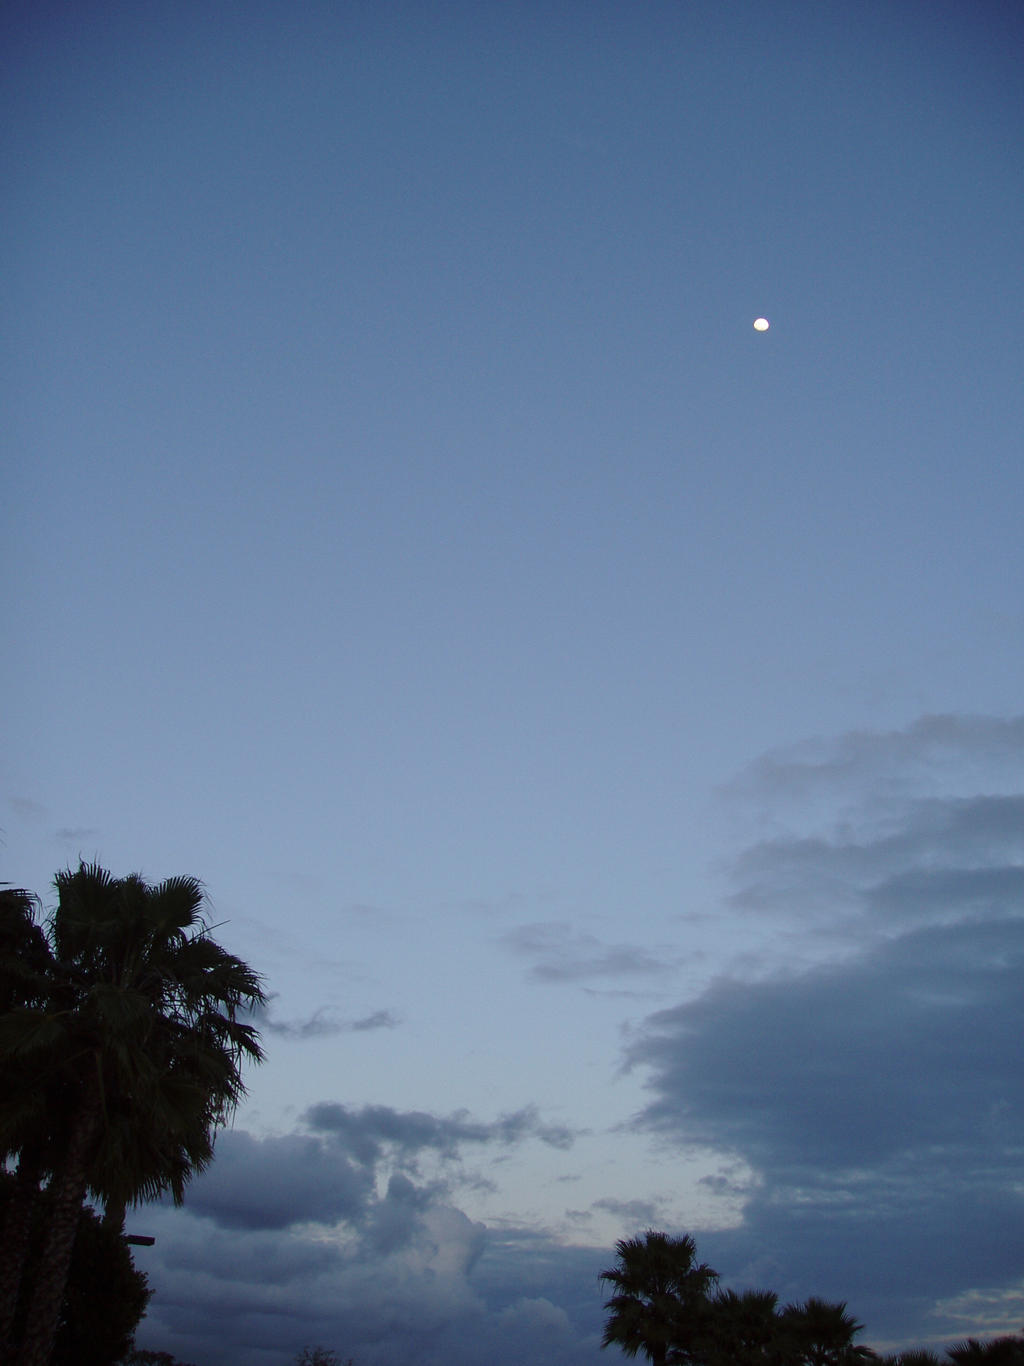 Evening sky with moon by Elliesmeria